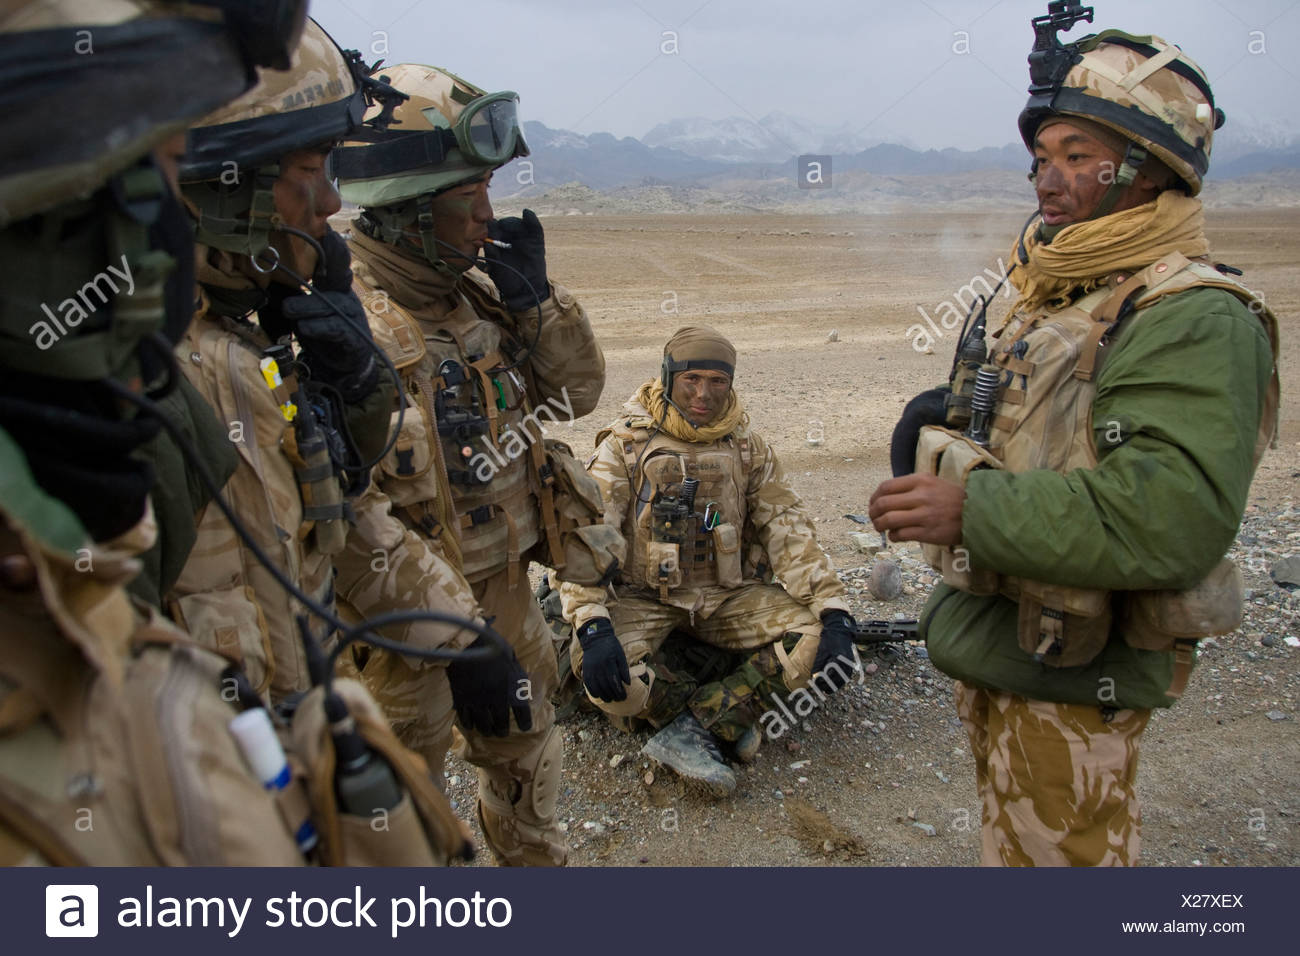 A group of Gurkha soldiers wait for a helicopter. - Stock Image